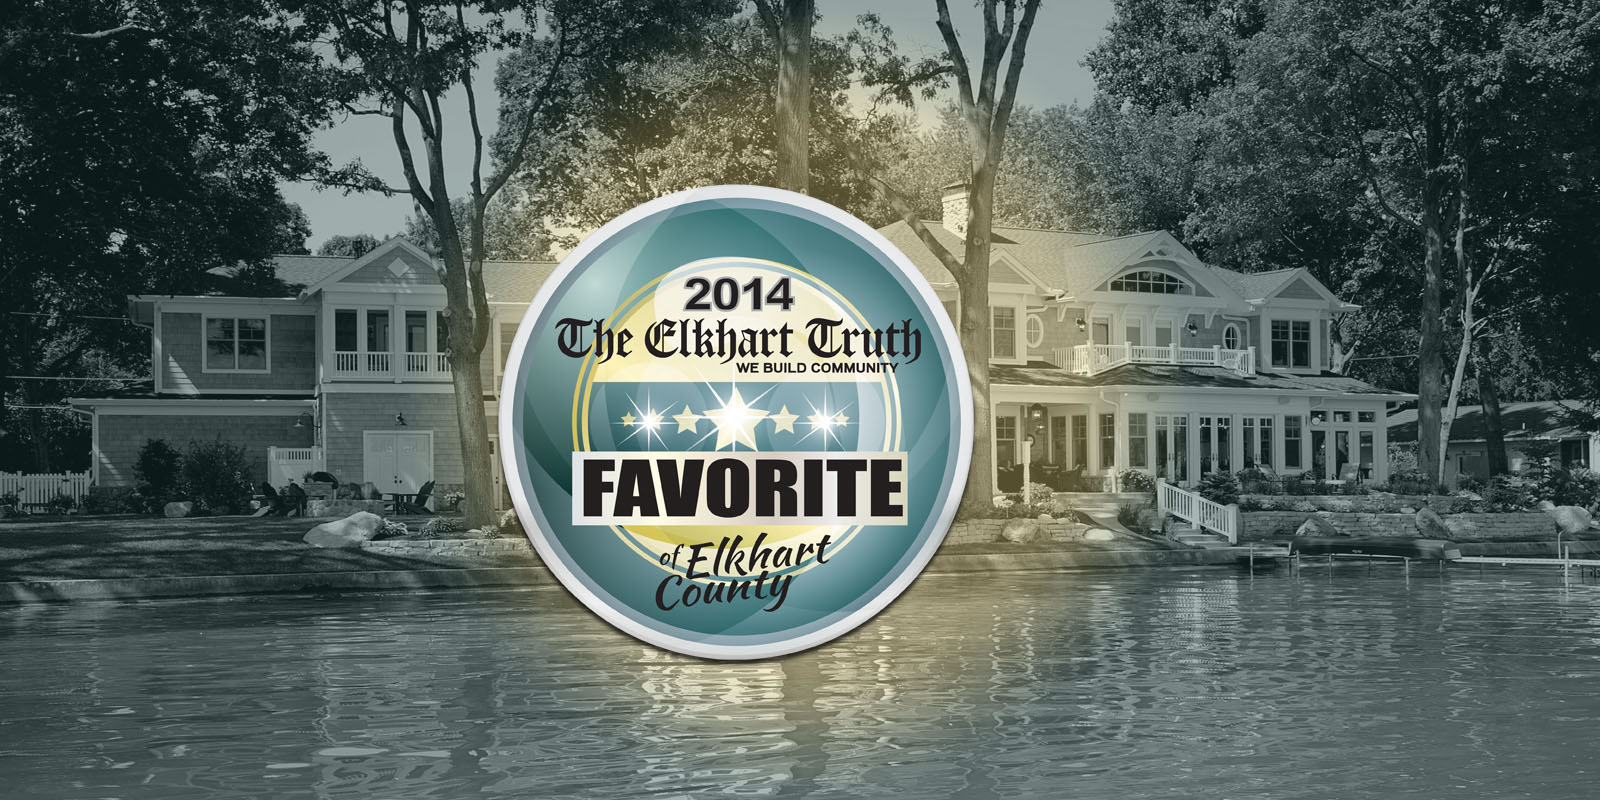 Voted Favorite Builder of Elkhart County 2014